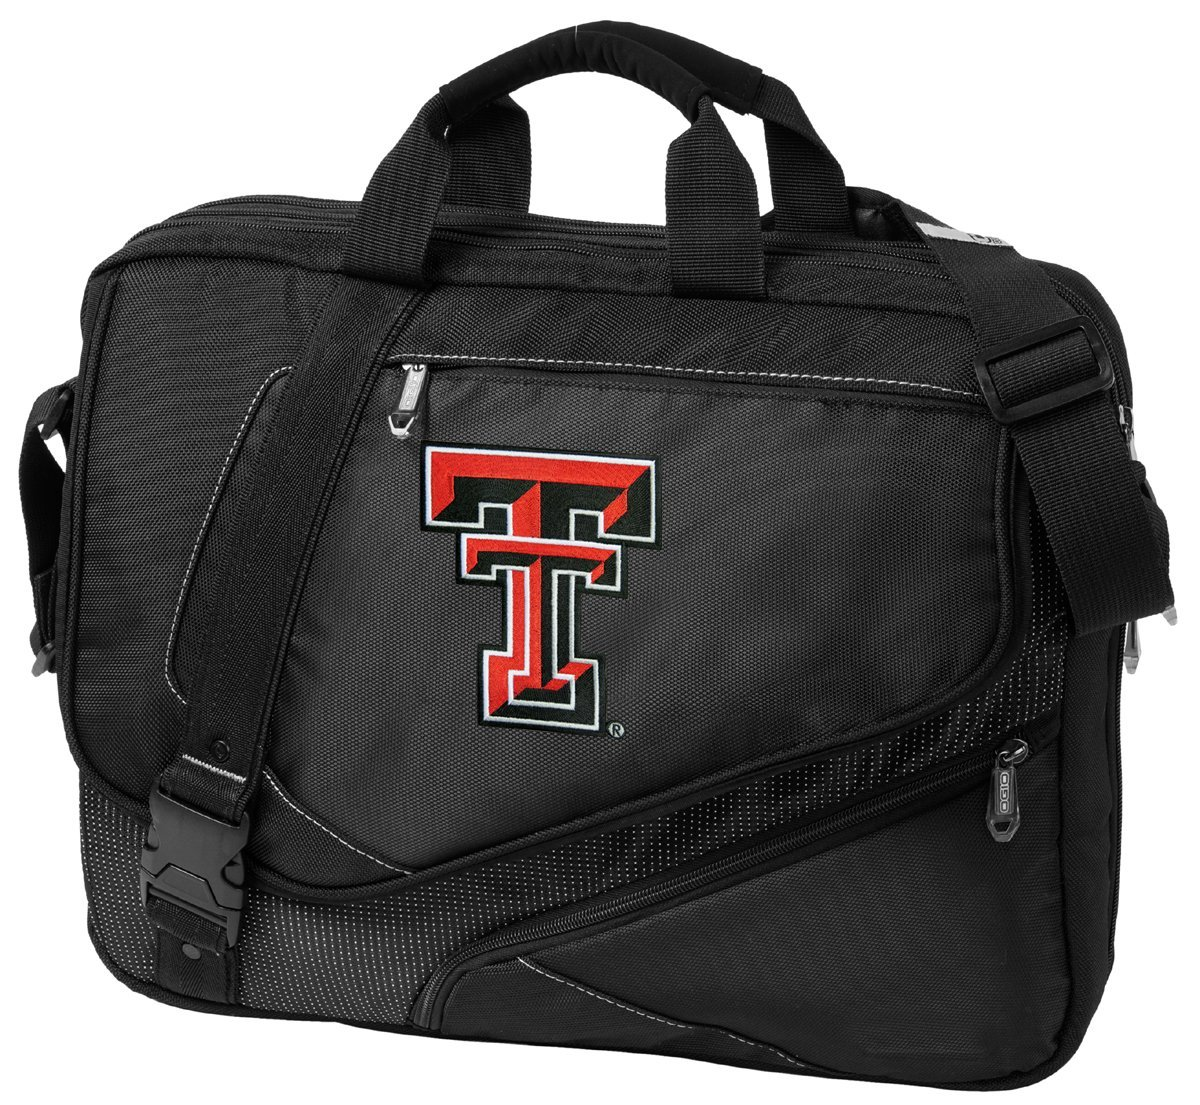 a06f8e72f8 Large Texas Tech Laptop Bag OUR BEST Texas Tech Red Raiders Computer Bag